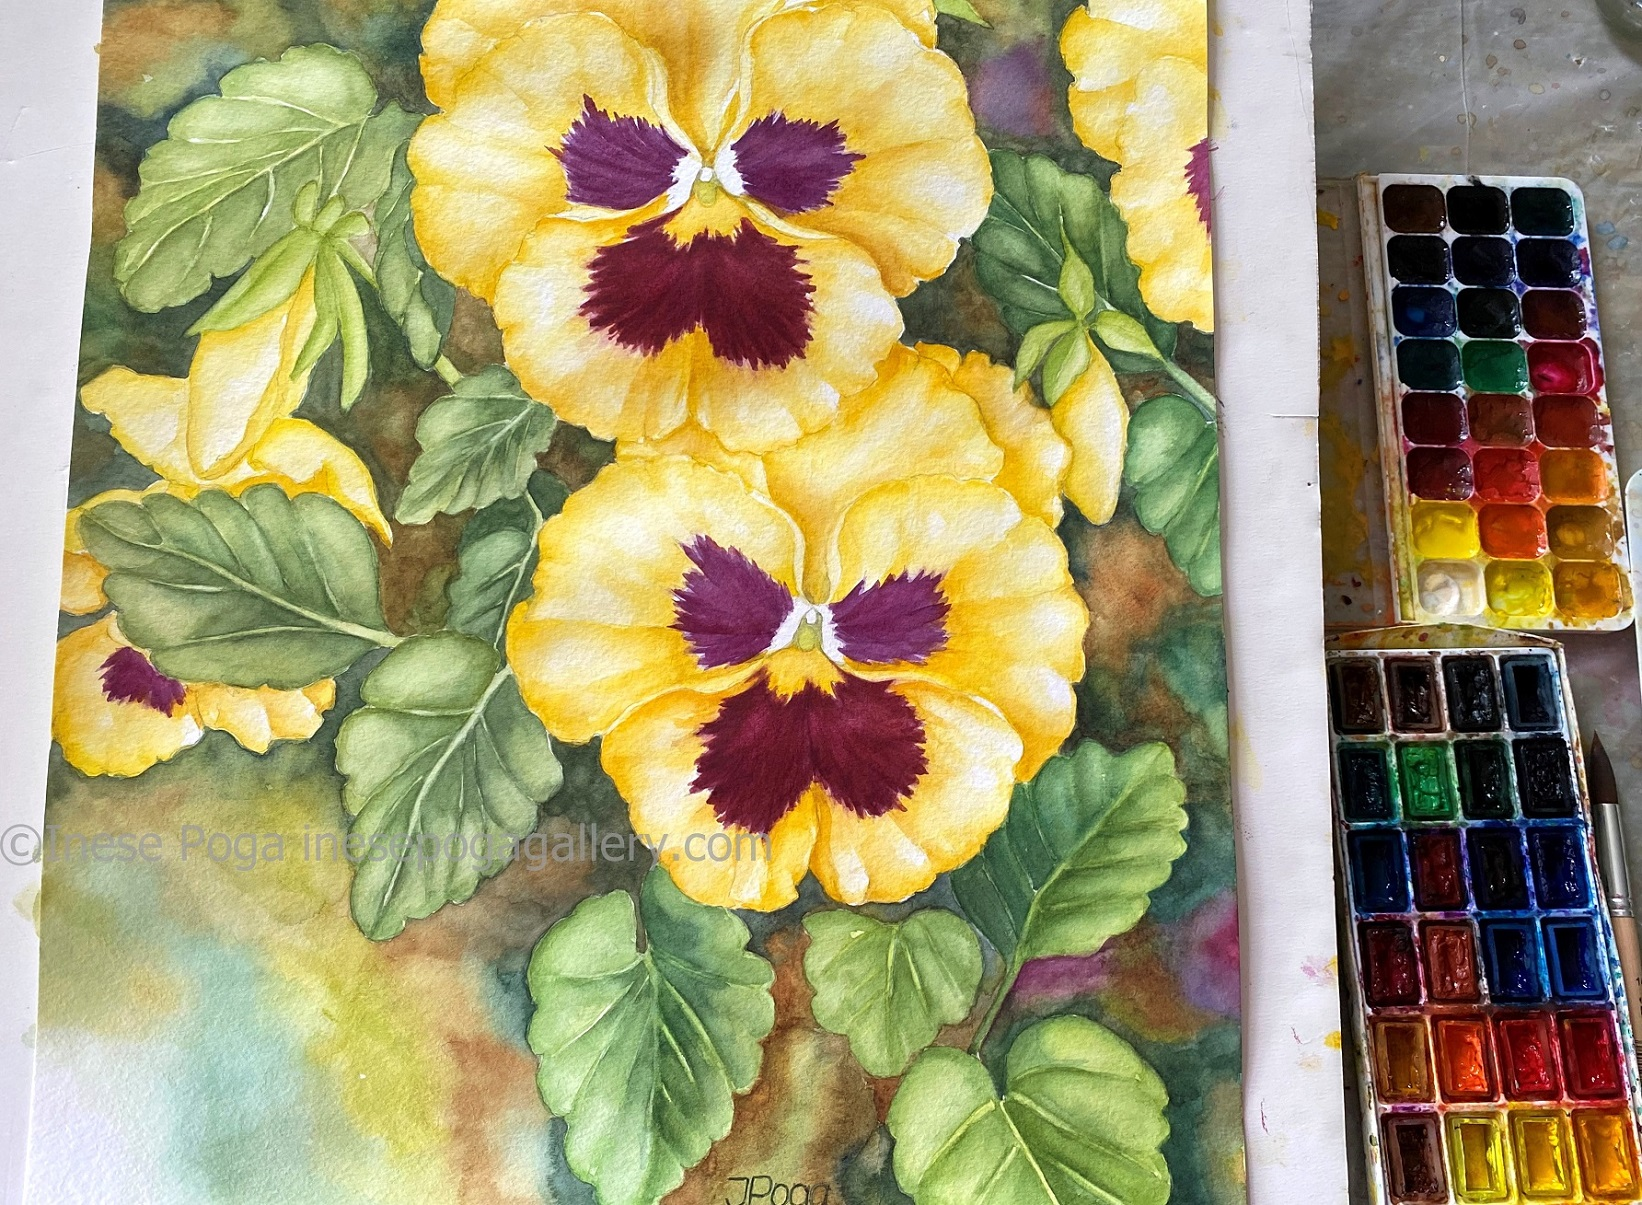 Pansy smiles, once again, and new art classes